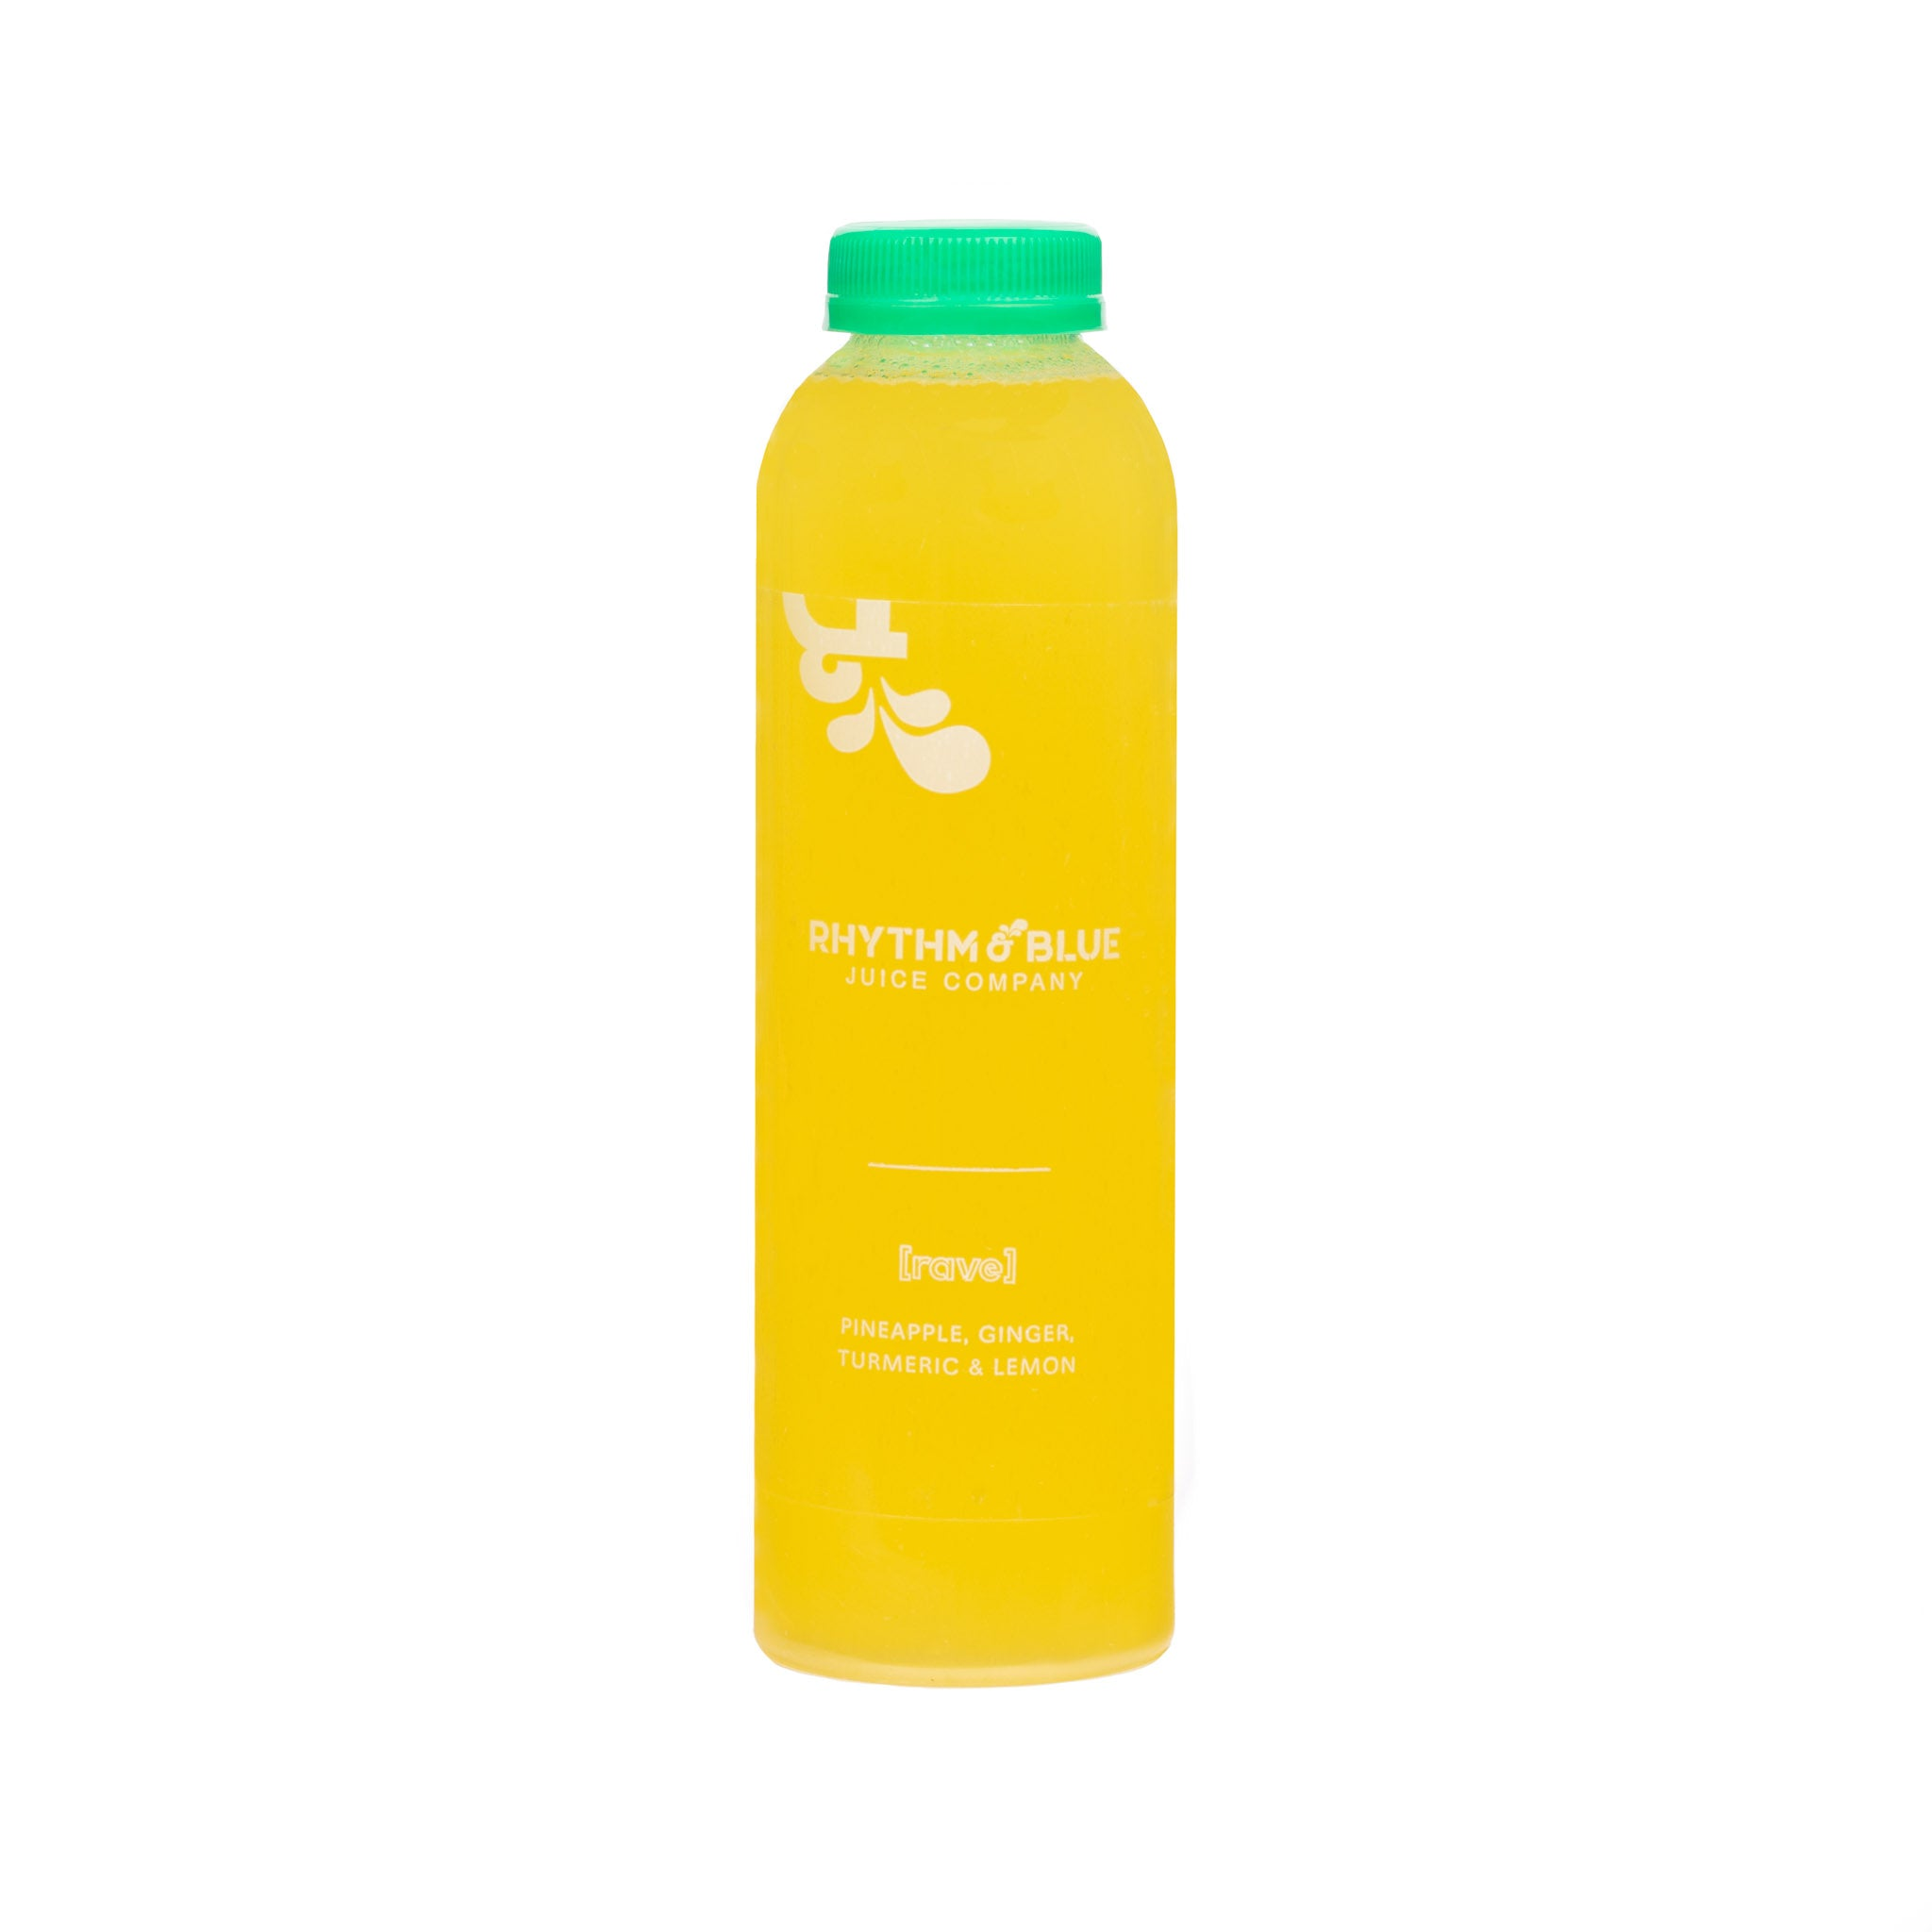 [rave] Cold Pressed Juice